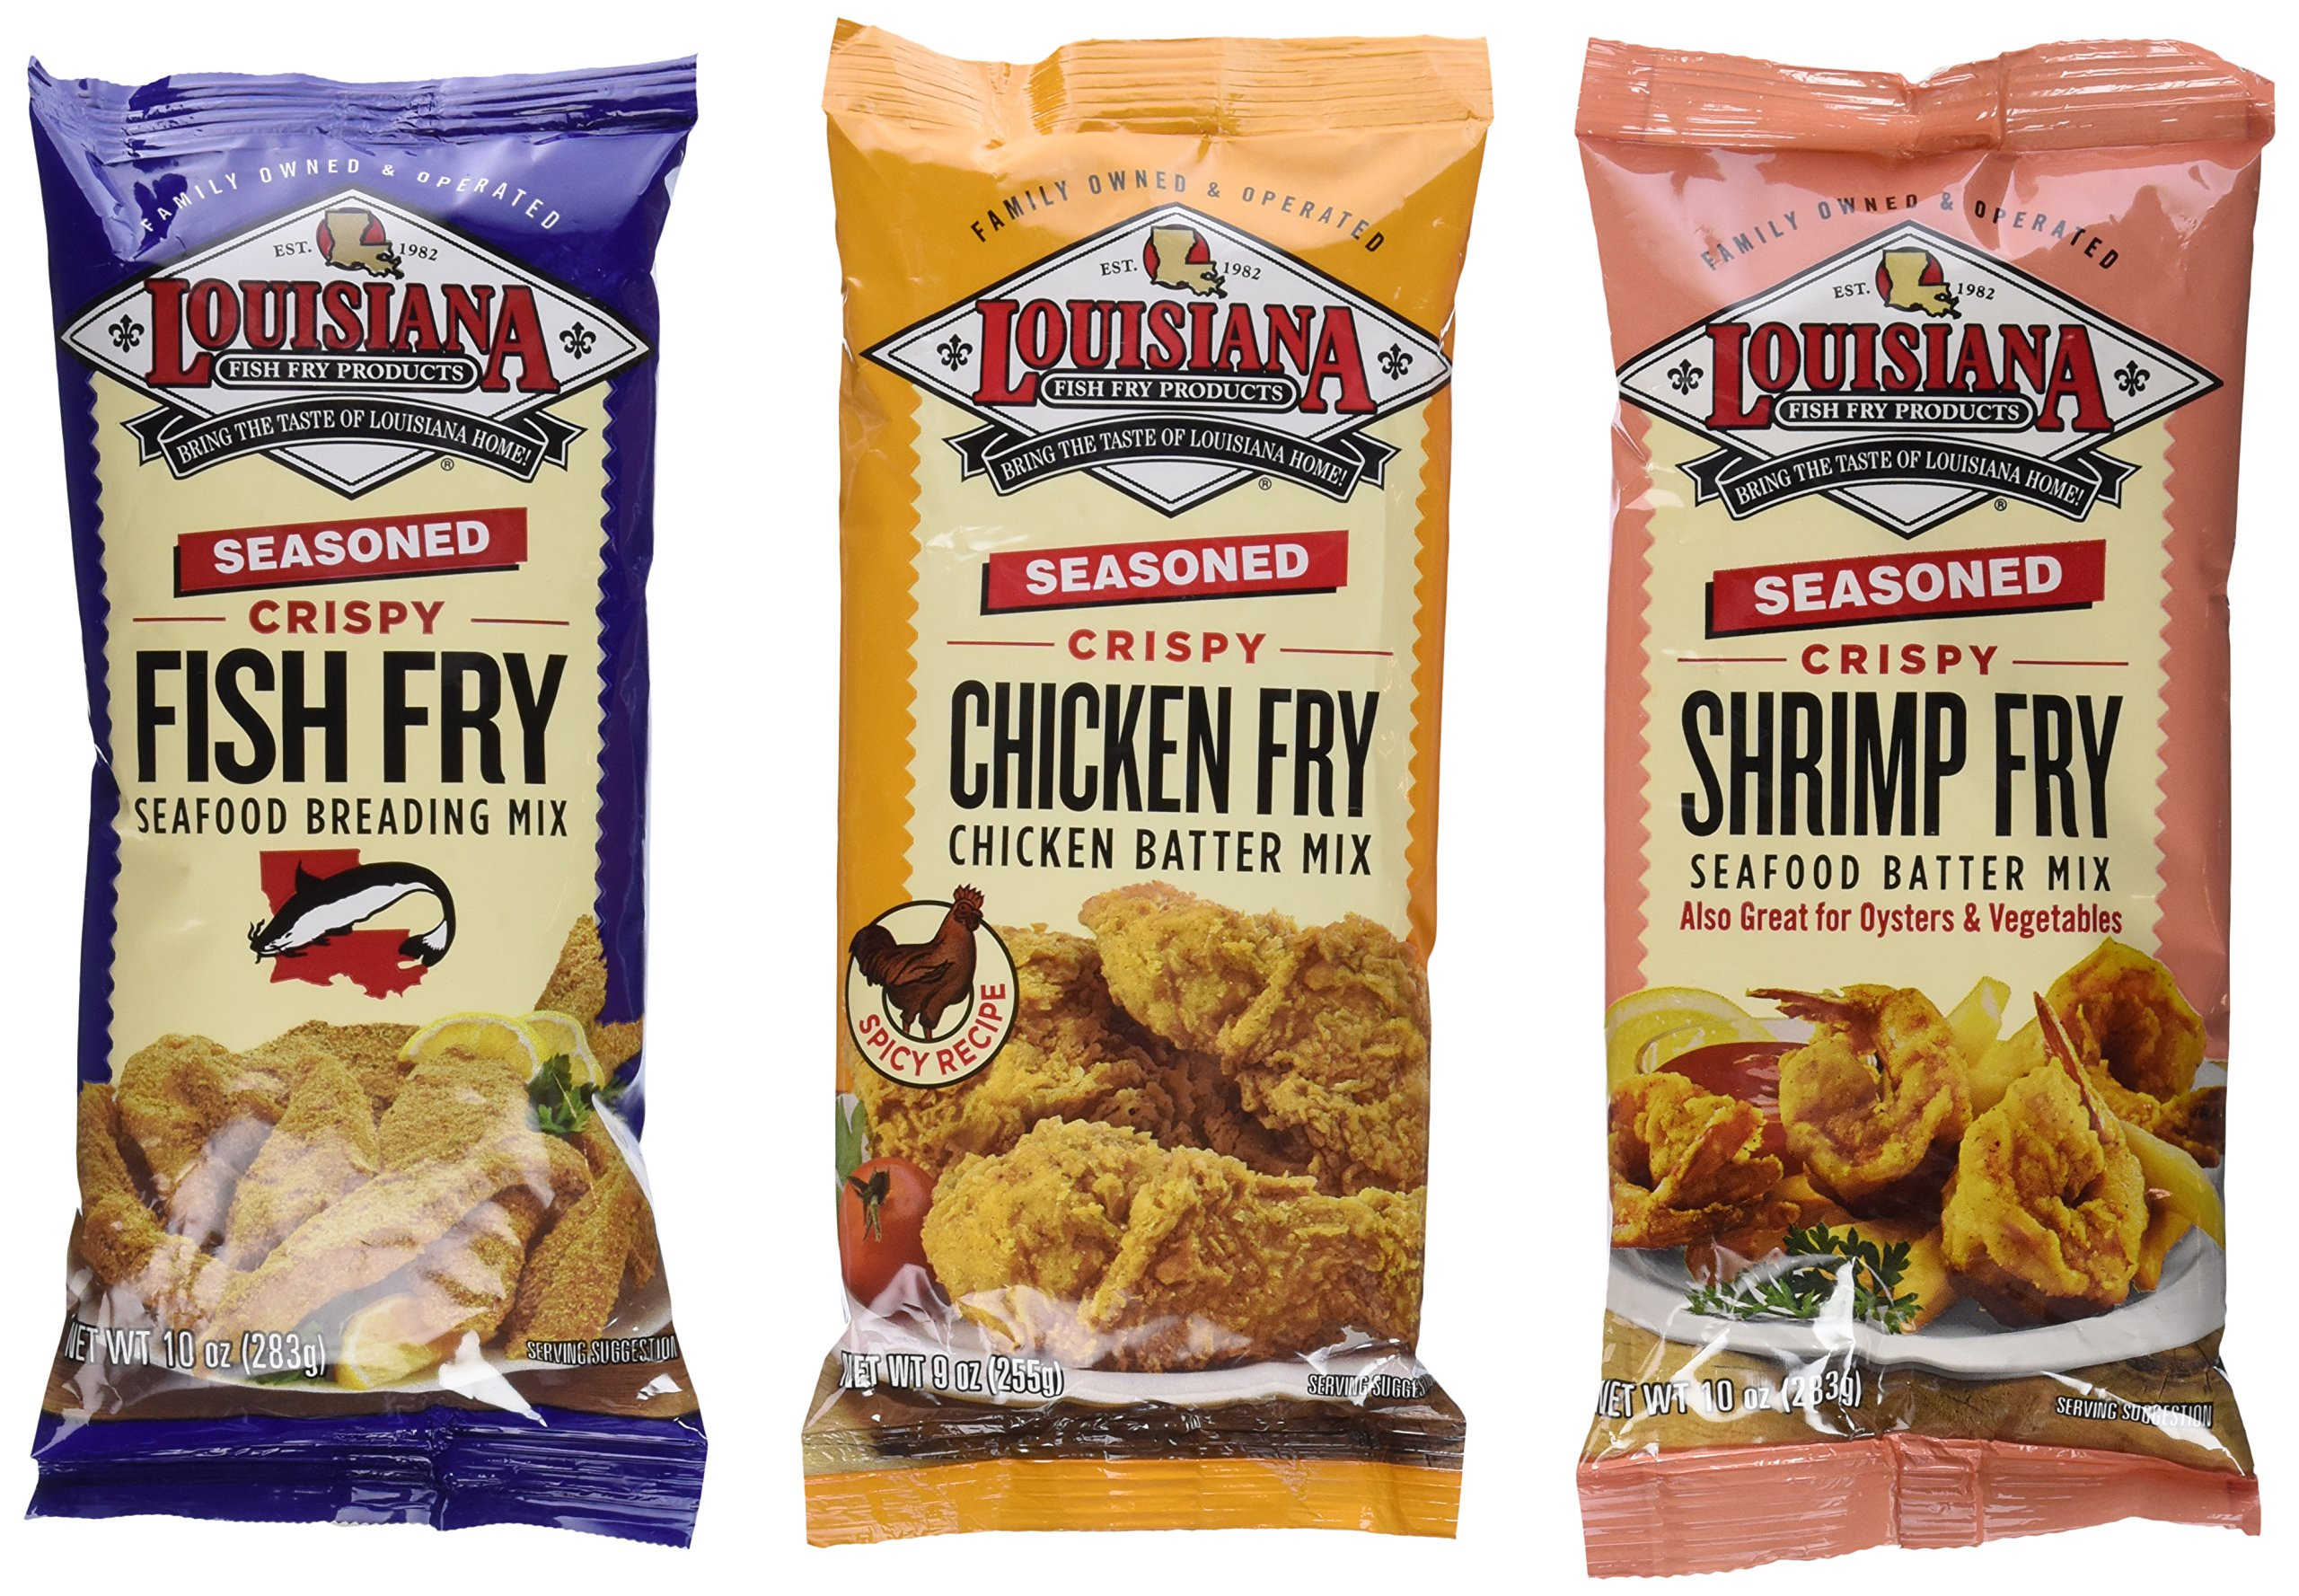 Louisiana Fish Fry Products Seasoned Fry Mix 3 Flavor 6 Package Variety Bundle: (2) Lousiana Seasoned Crispy Chicken Fry Batter Mix, (2) Louisiana Seasoned Shrimp, Oyster, Seafood & Vegetable Batter Fry Mix, and (2) Louisiana Seasoned Crispy Fish & Seafood Fry Breading Mix, 9-10 Oz. Ea. (6 Bags